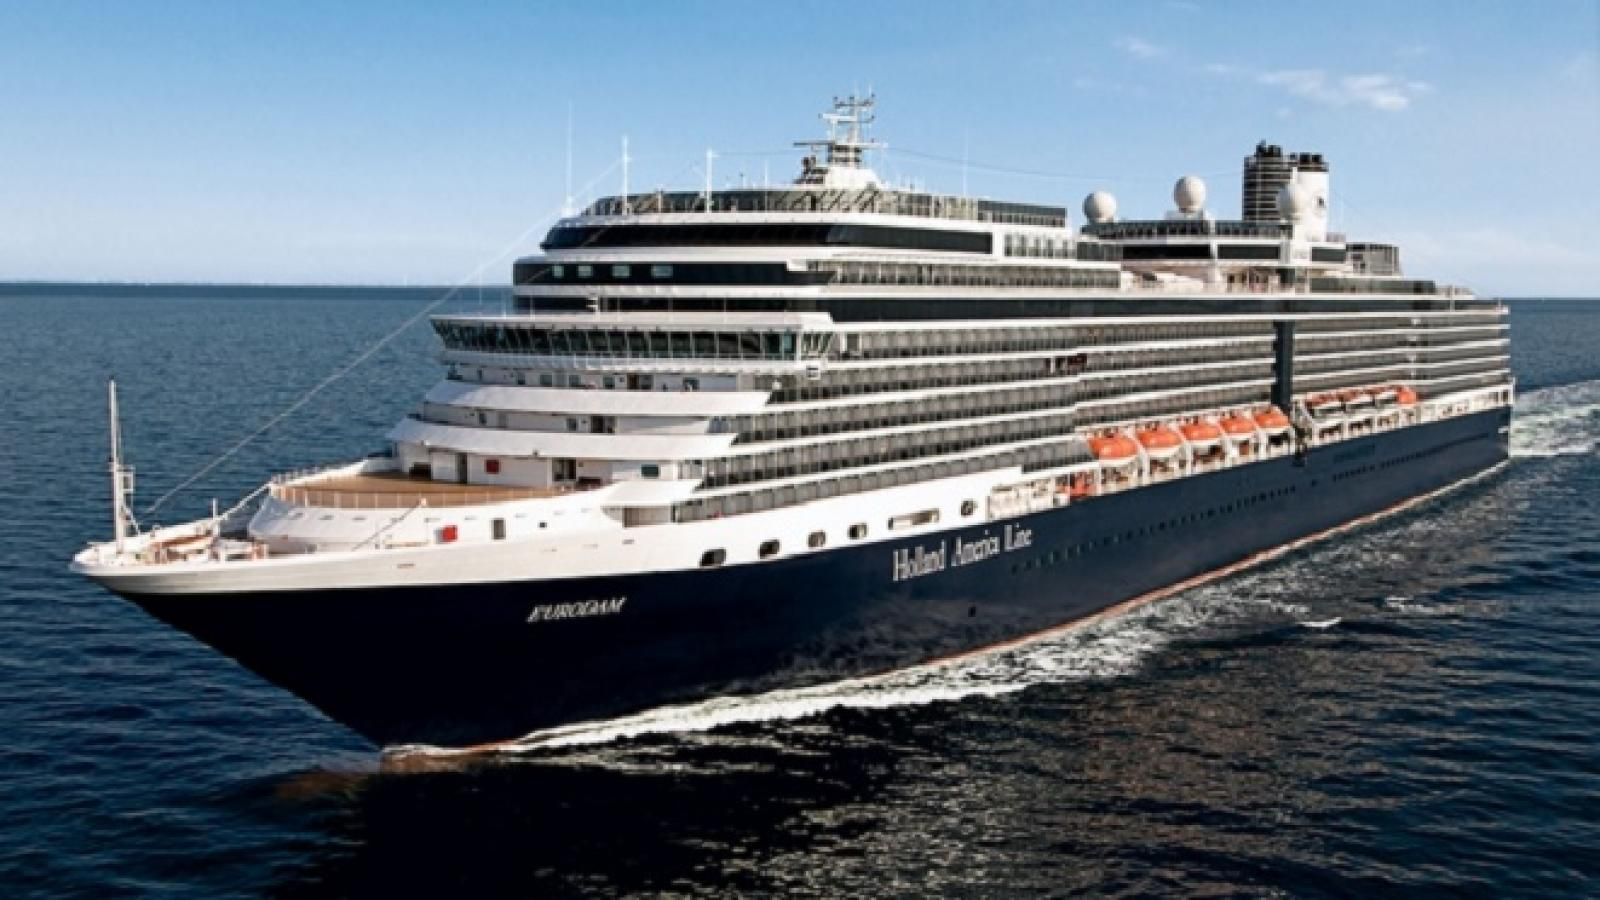 HOLLAND AMERICA LINE EMPLOYMENT